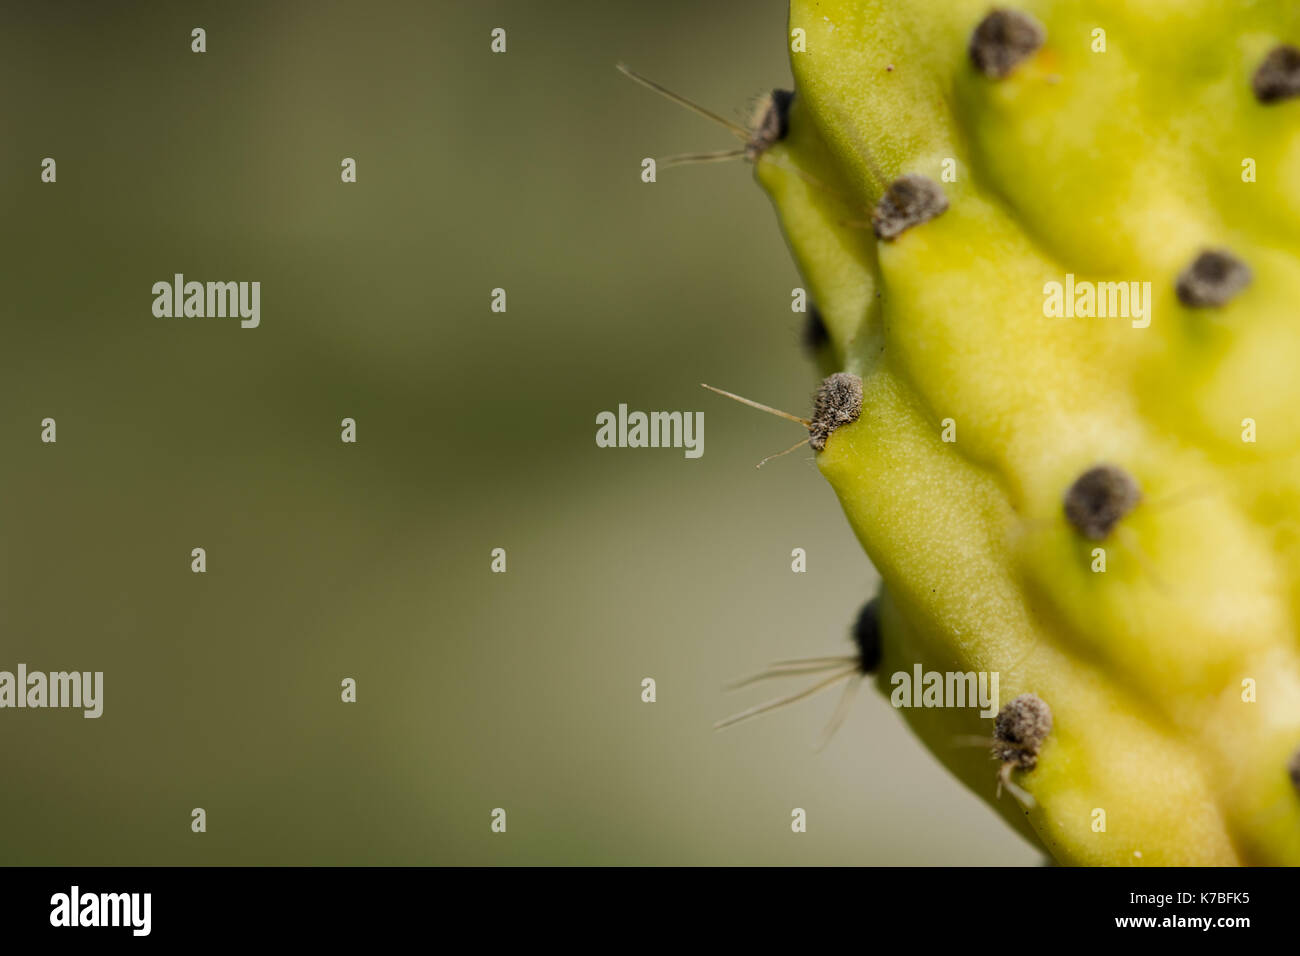 The edible yellow fruit of a prickly pear plant or Indian fig, Opuntia ficus-indica, full with thorns, found in the Maltese countryside, Malta - Stock Image